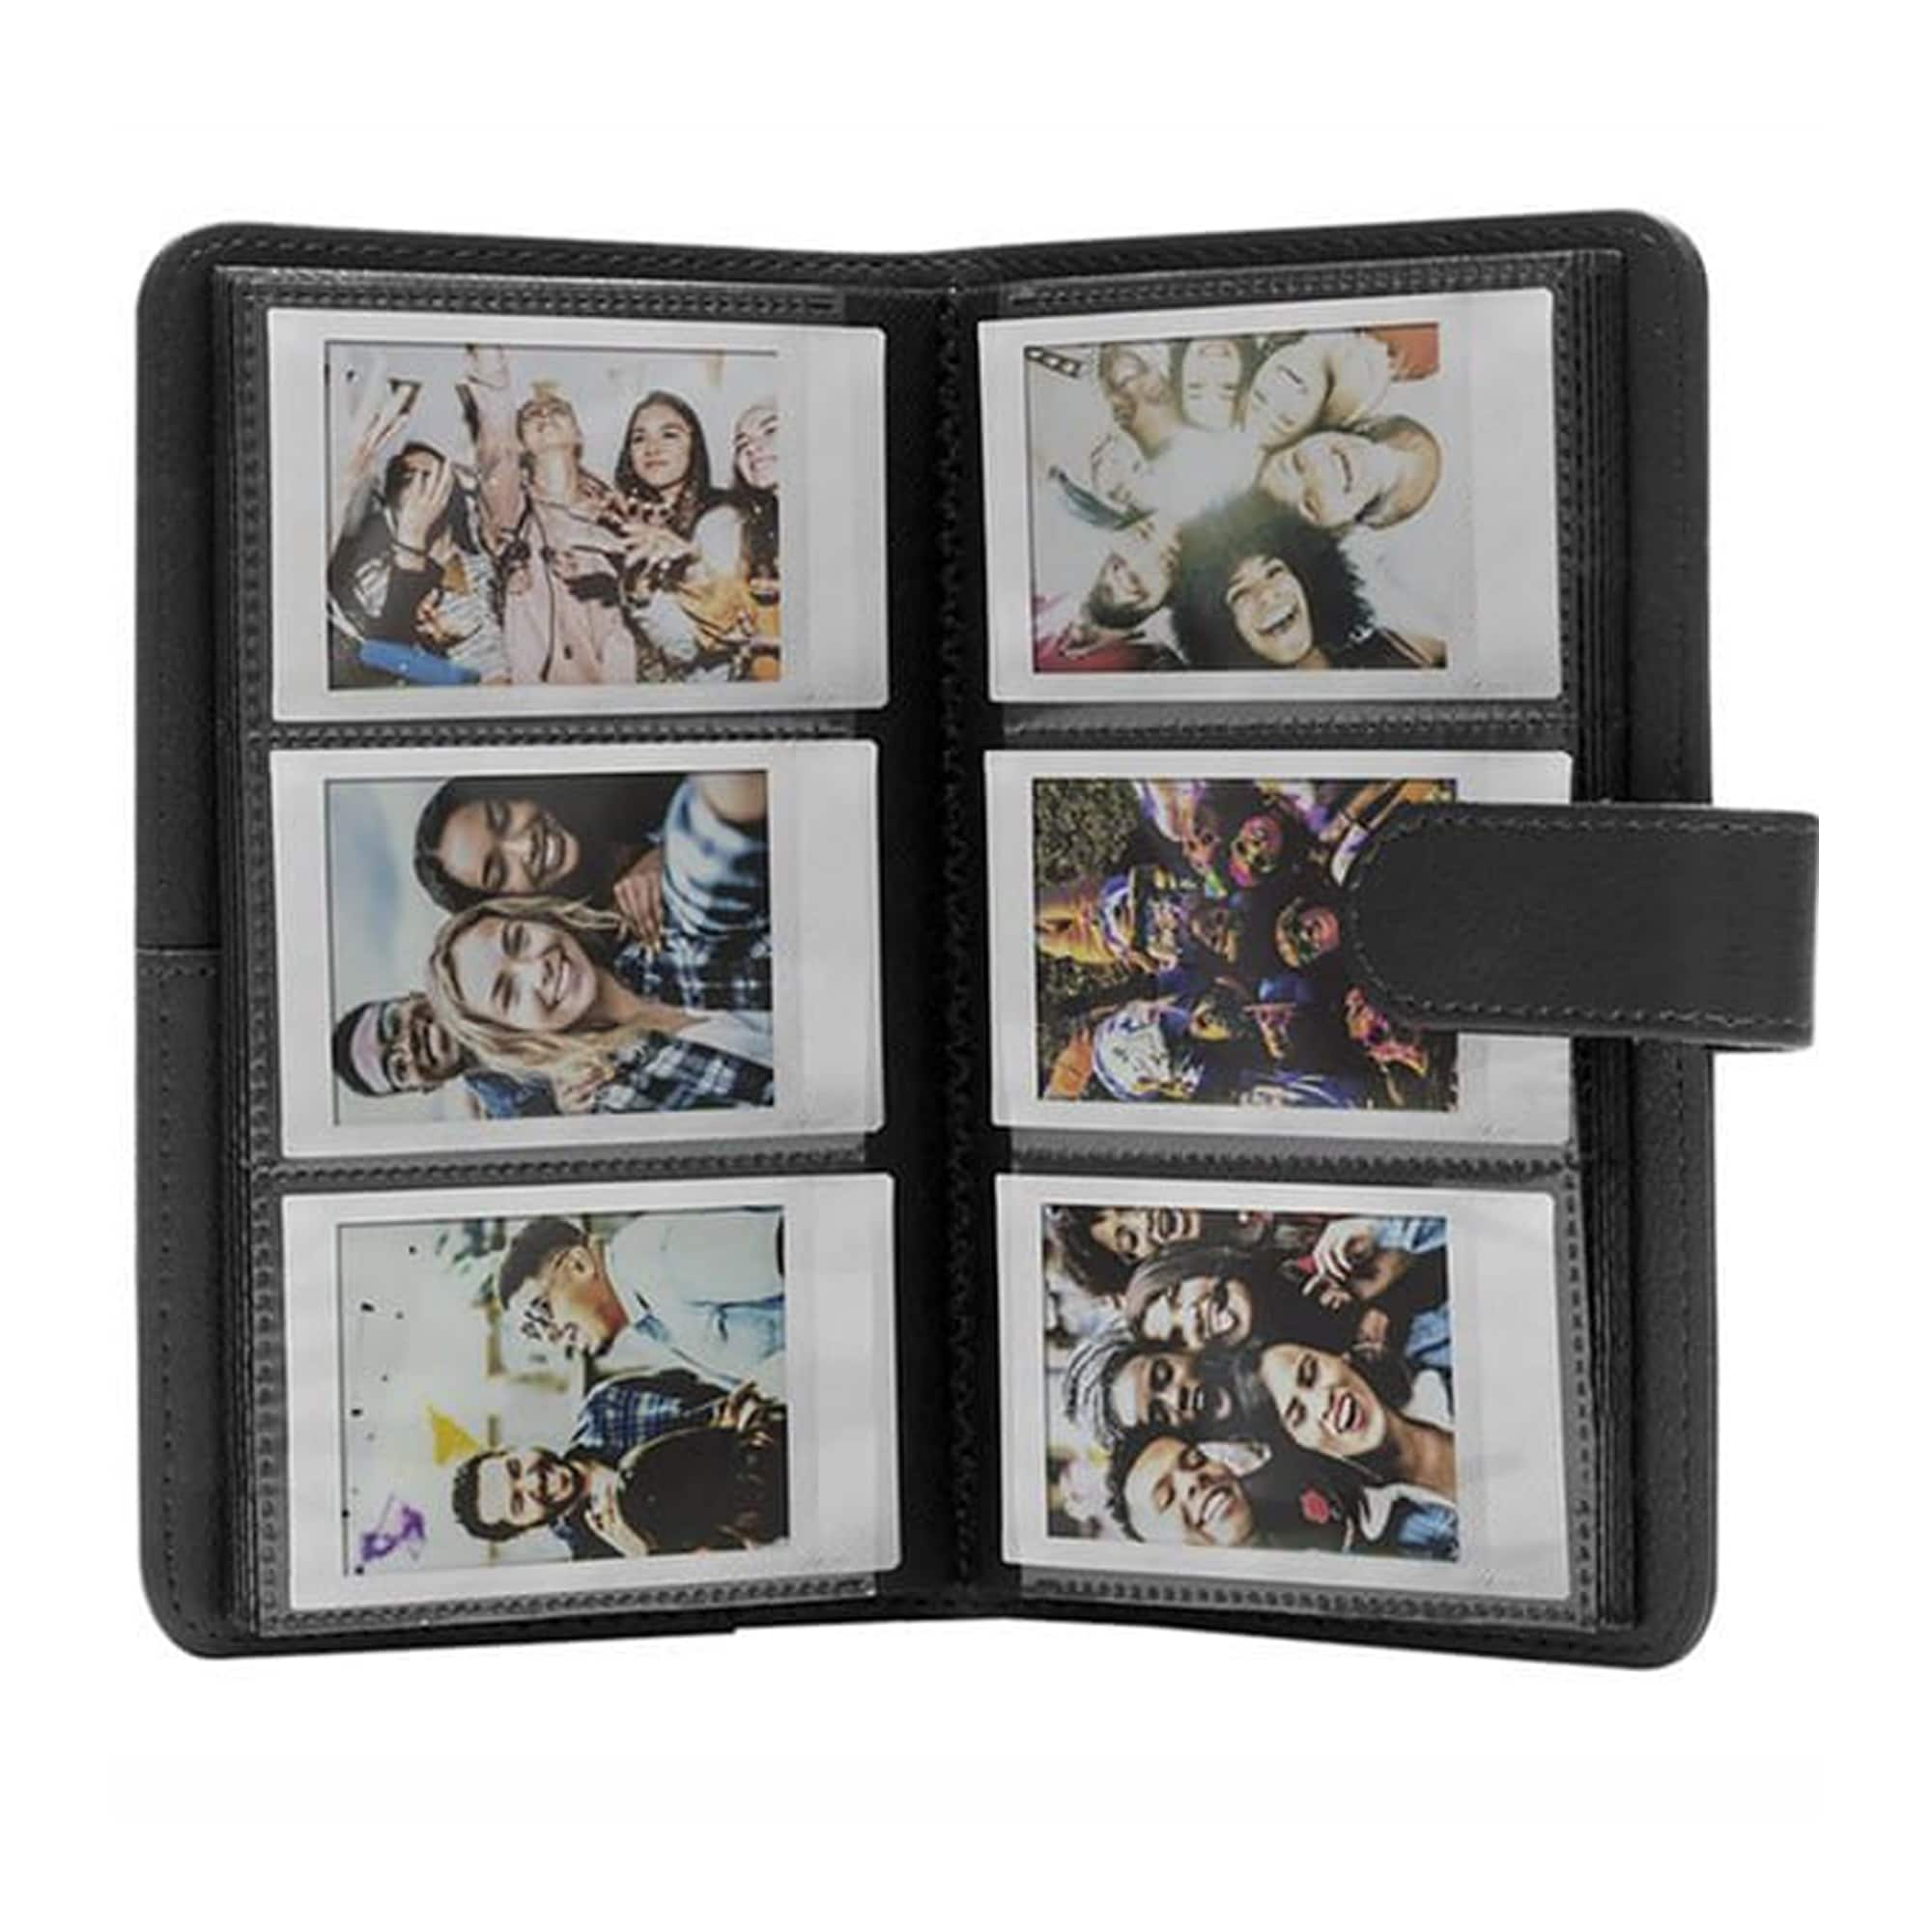 Fujifilm Instax Mini Album Charcoal Gray